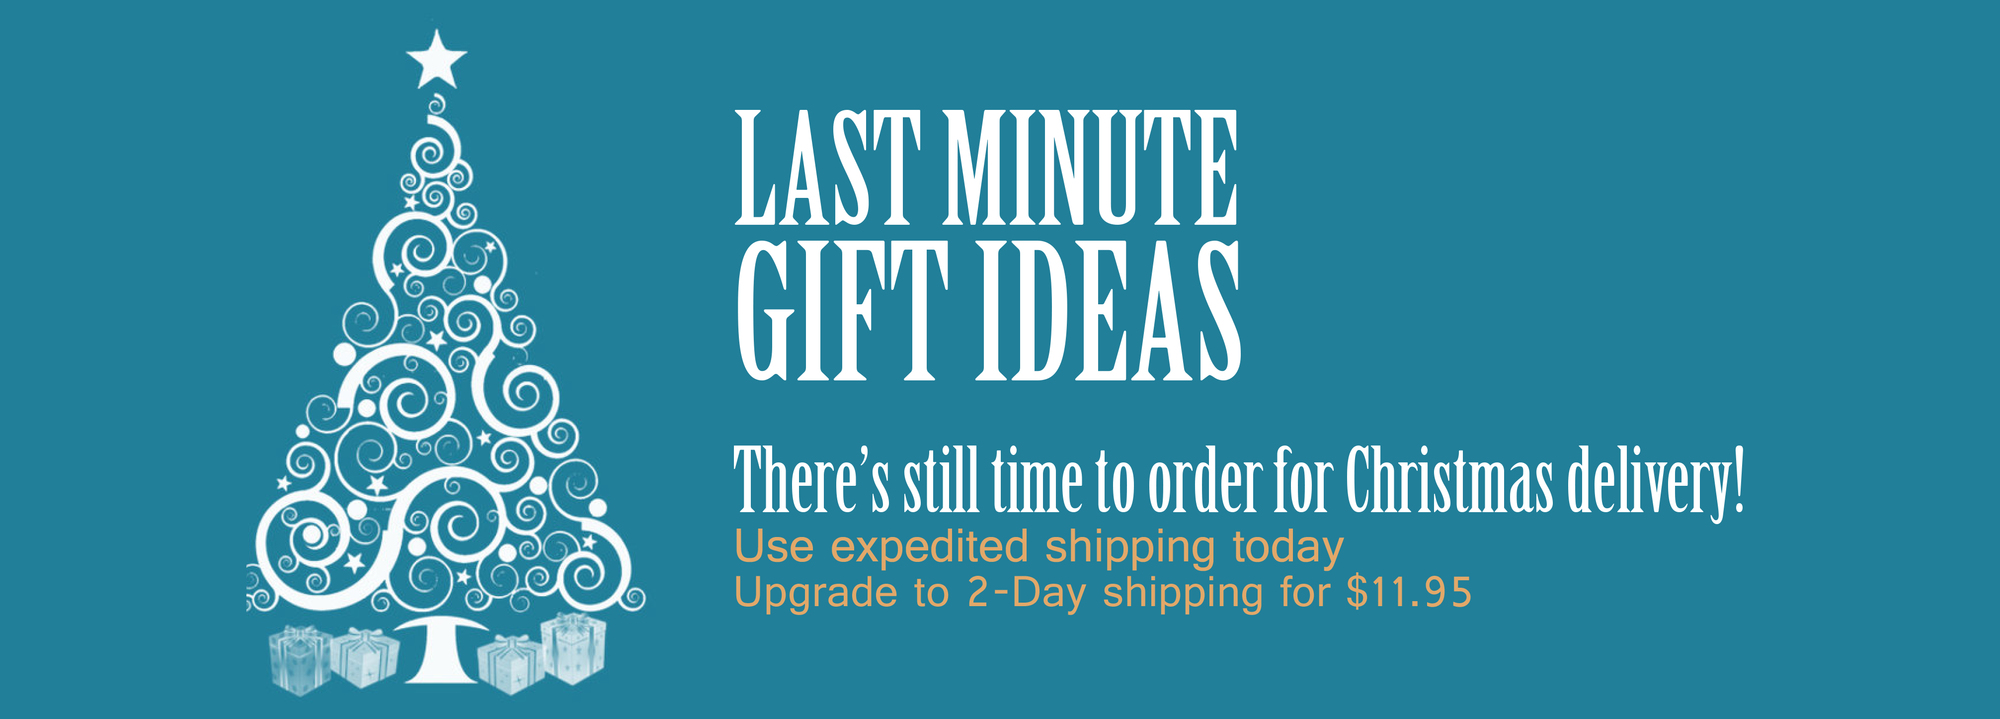 Last Chance For Christmas.Last Chance For Christmas Delivery